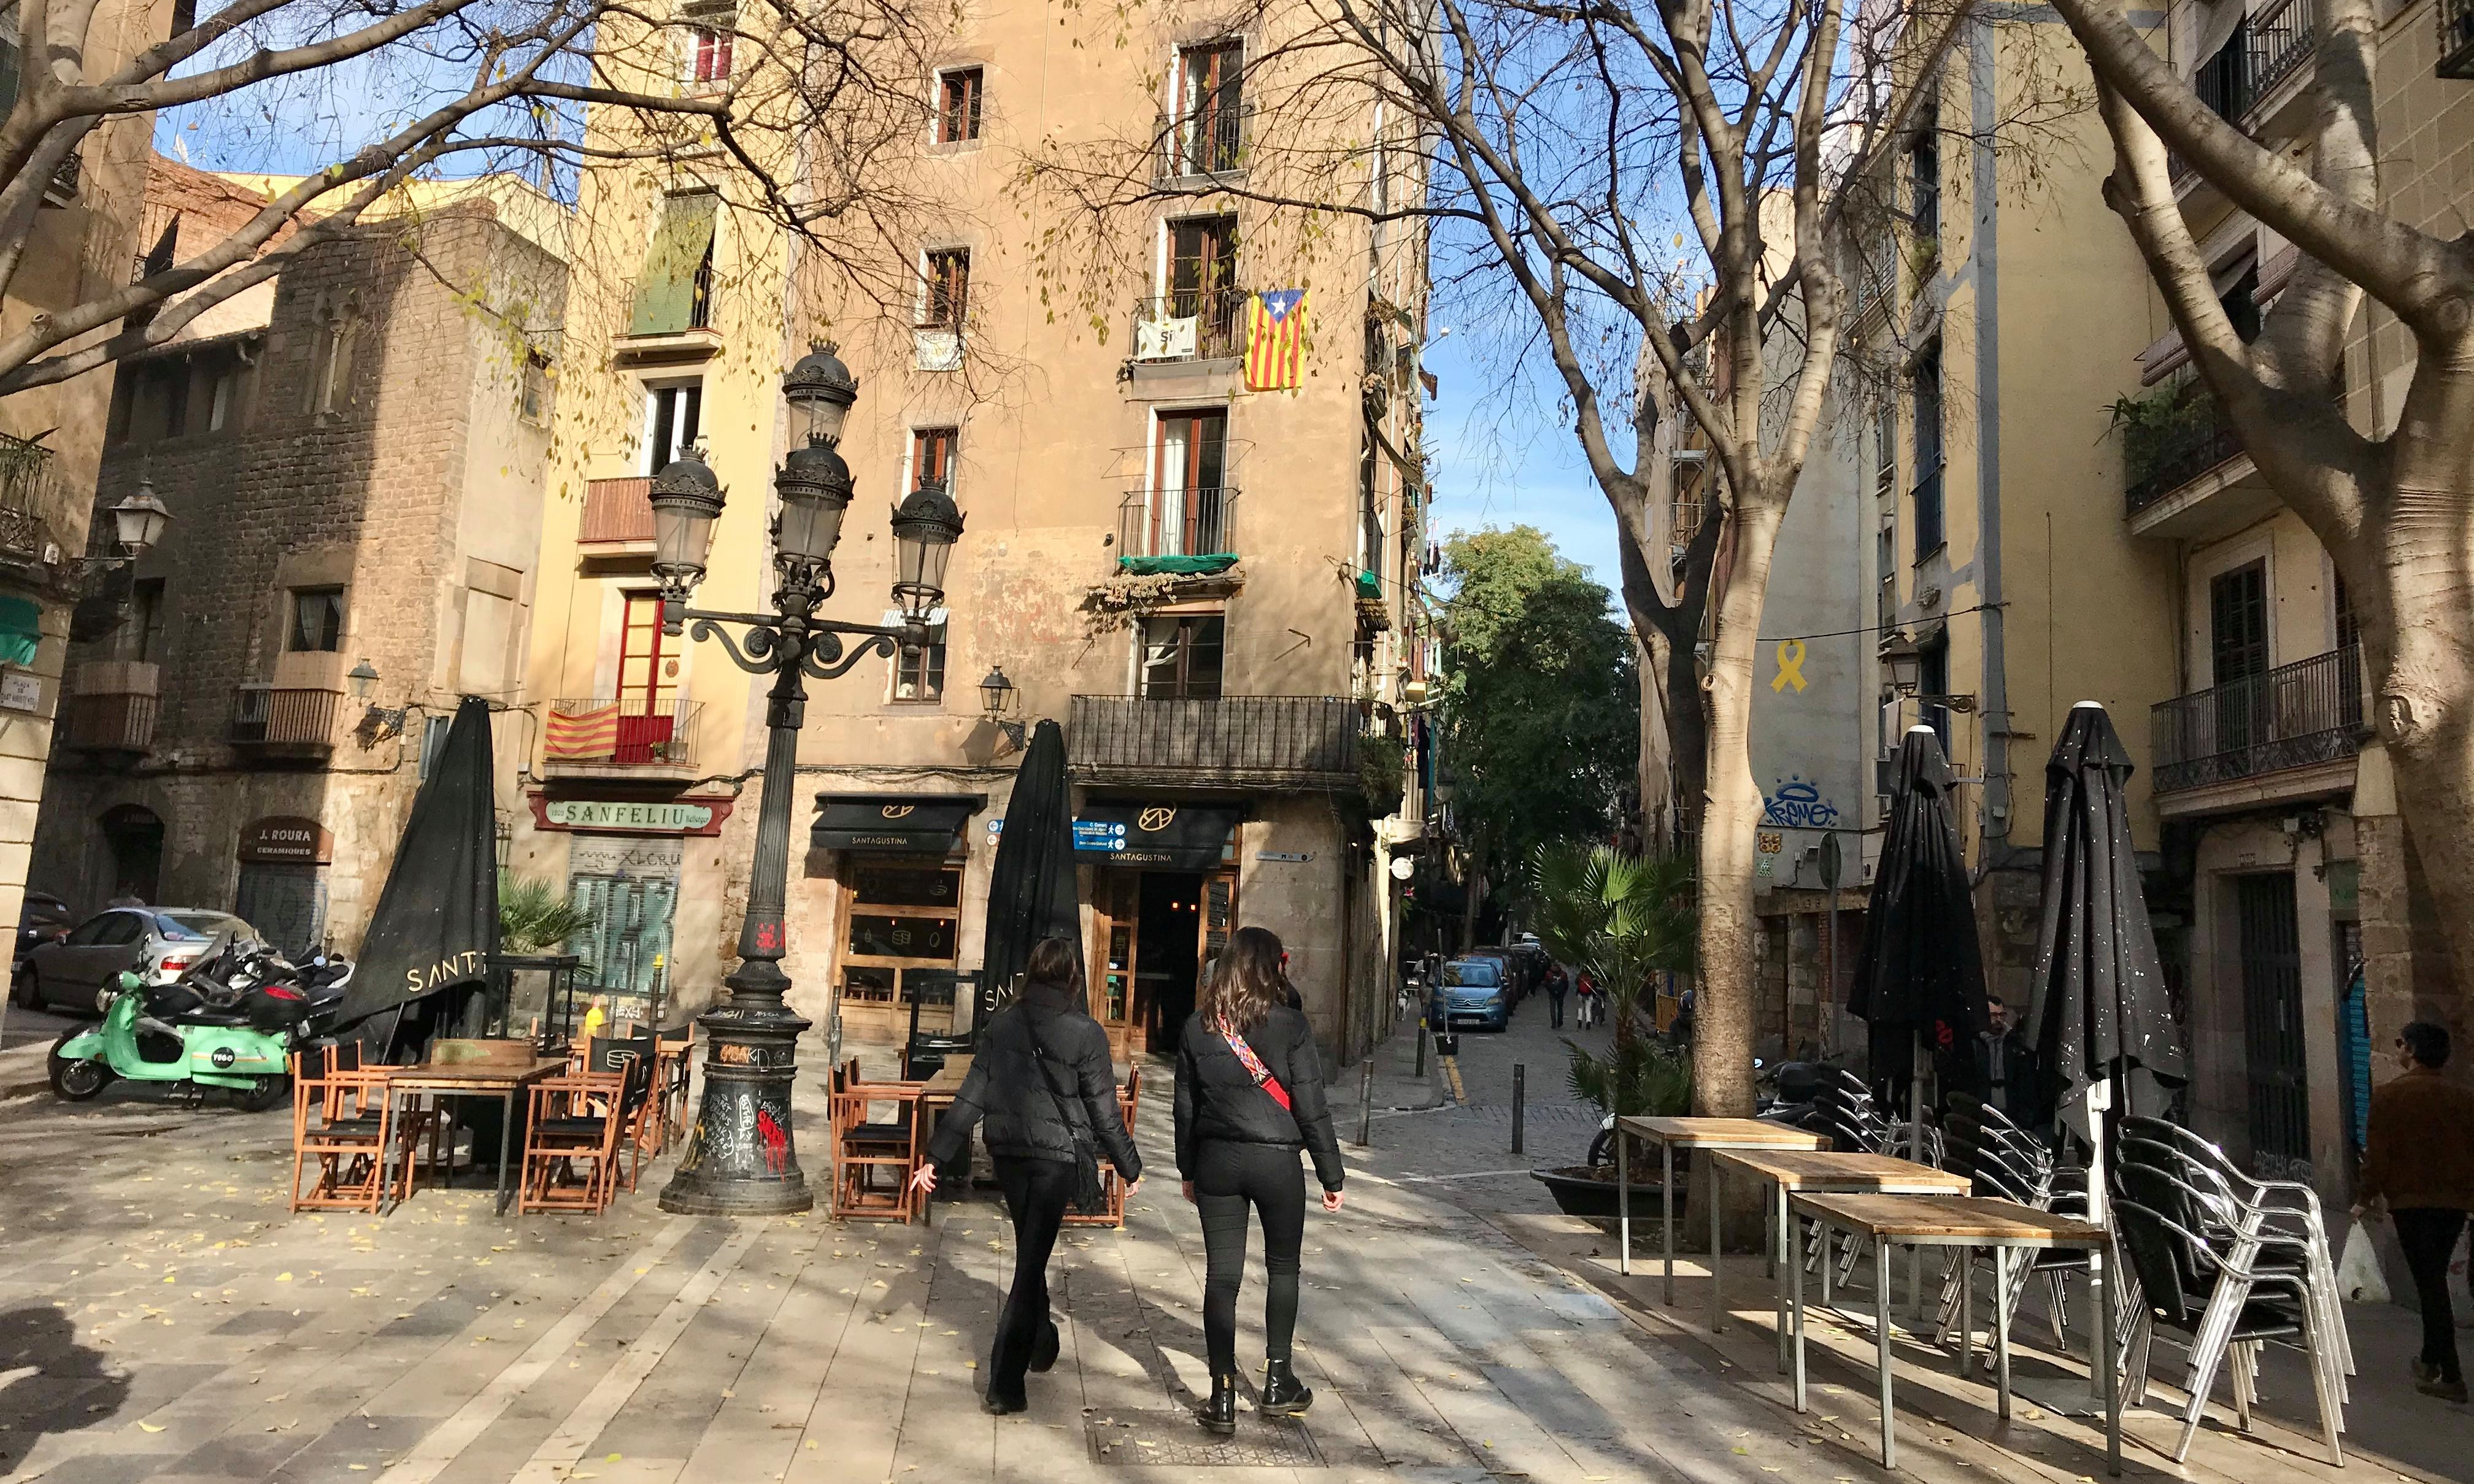 Soaring rents and noisy parties: how Airbnb is forcing out Barcelona locals